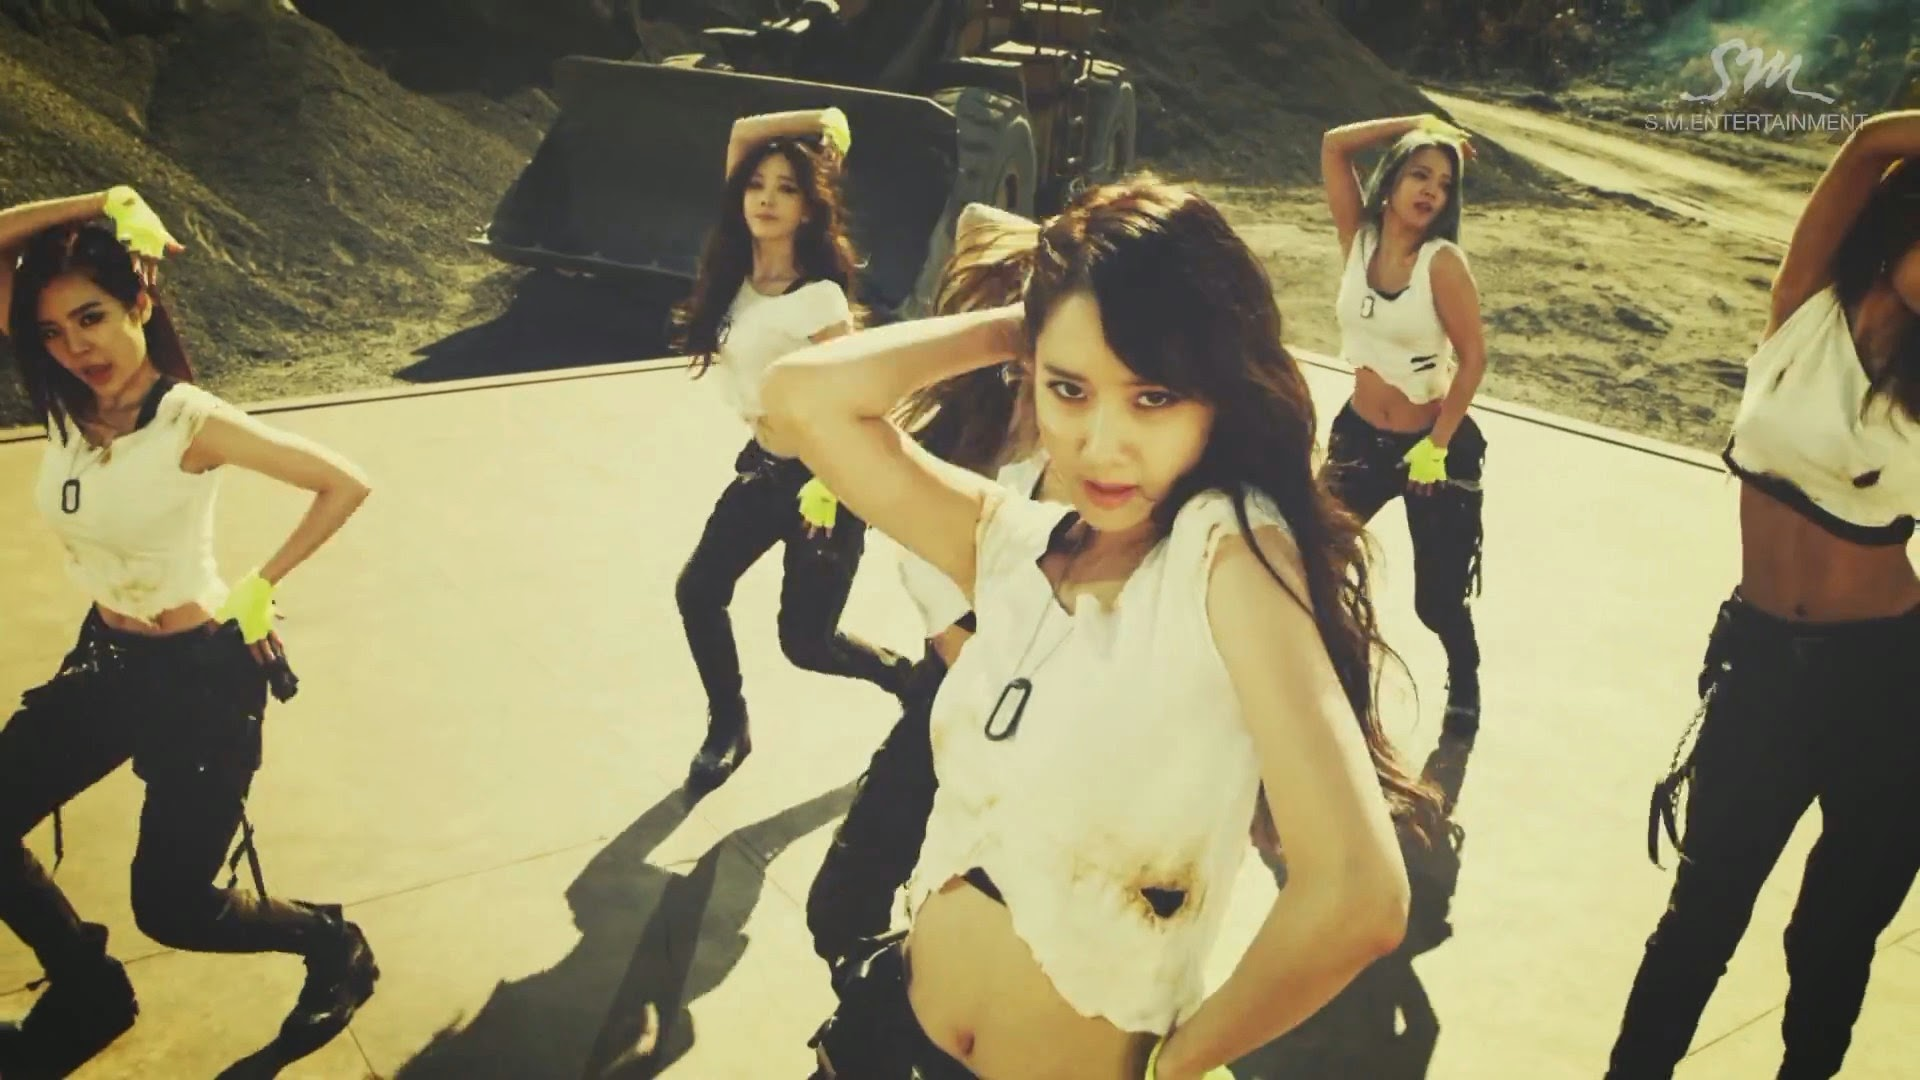 Girls' Generations' Yoona in Catch Me If You Can MV